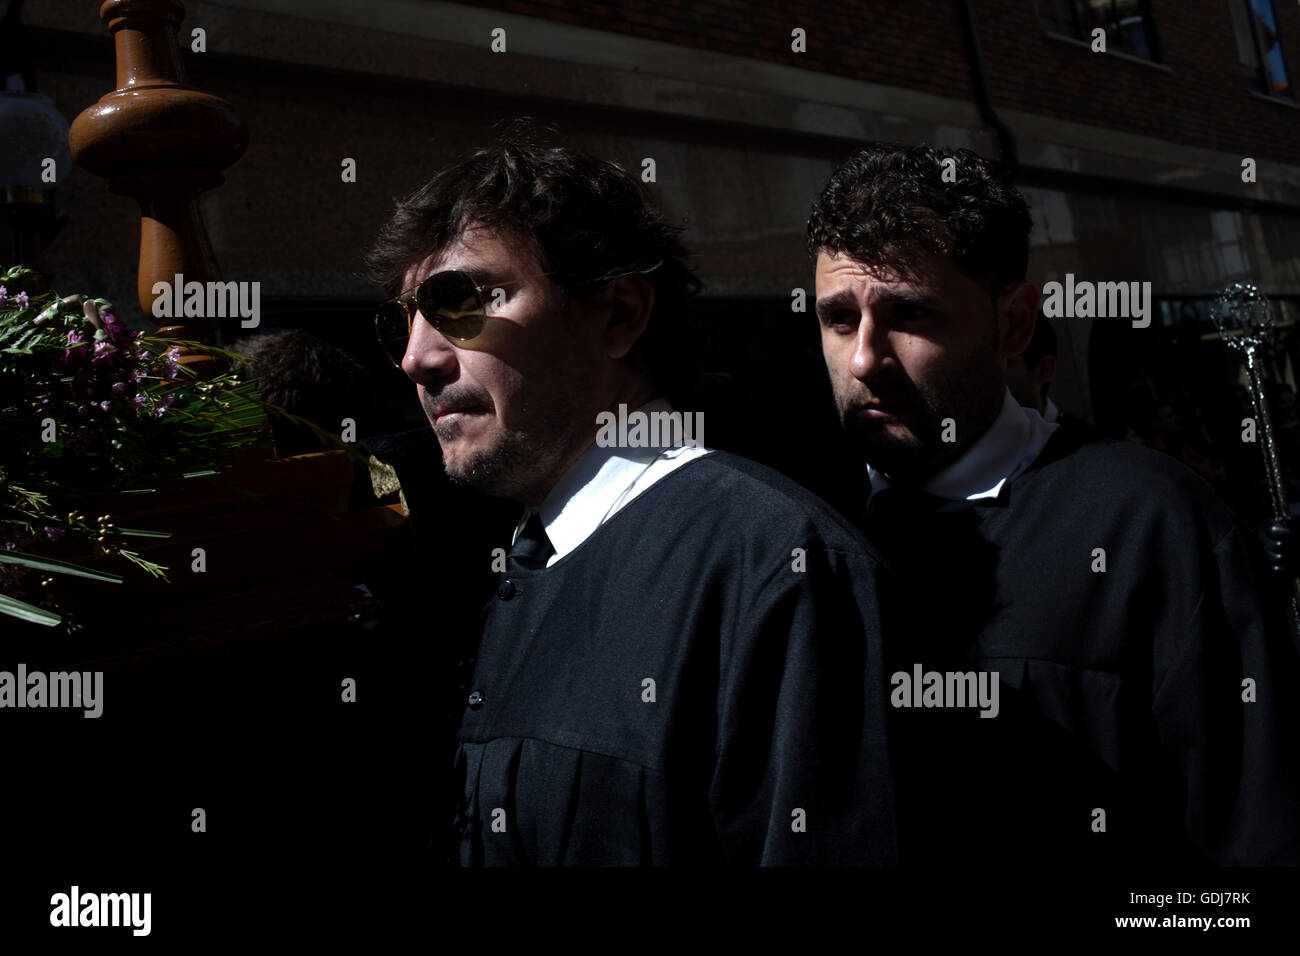 People carry a religious image during an Easter Holy Week procession in Astorga, Castilla y Leon, Spain. - Stock Image